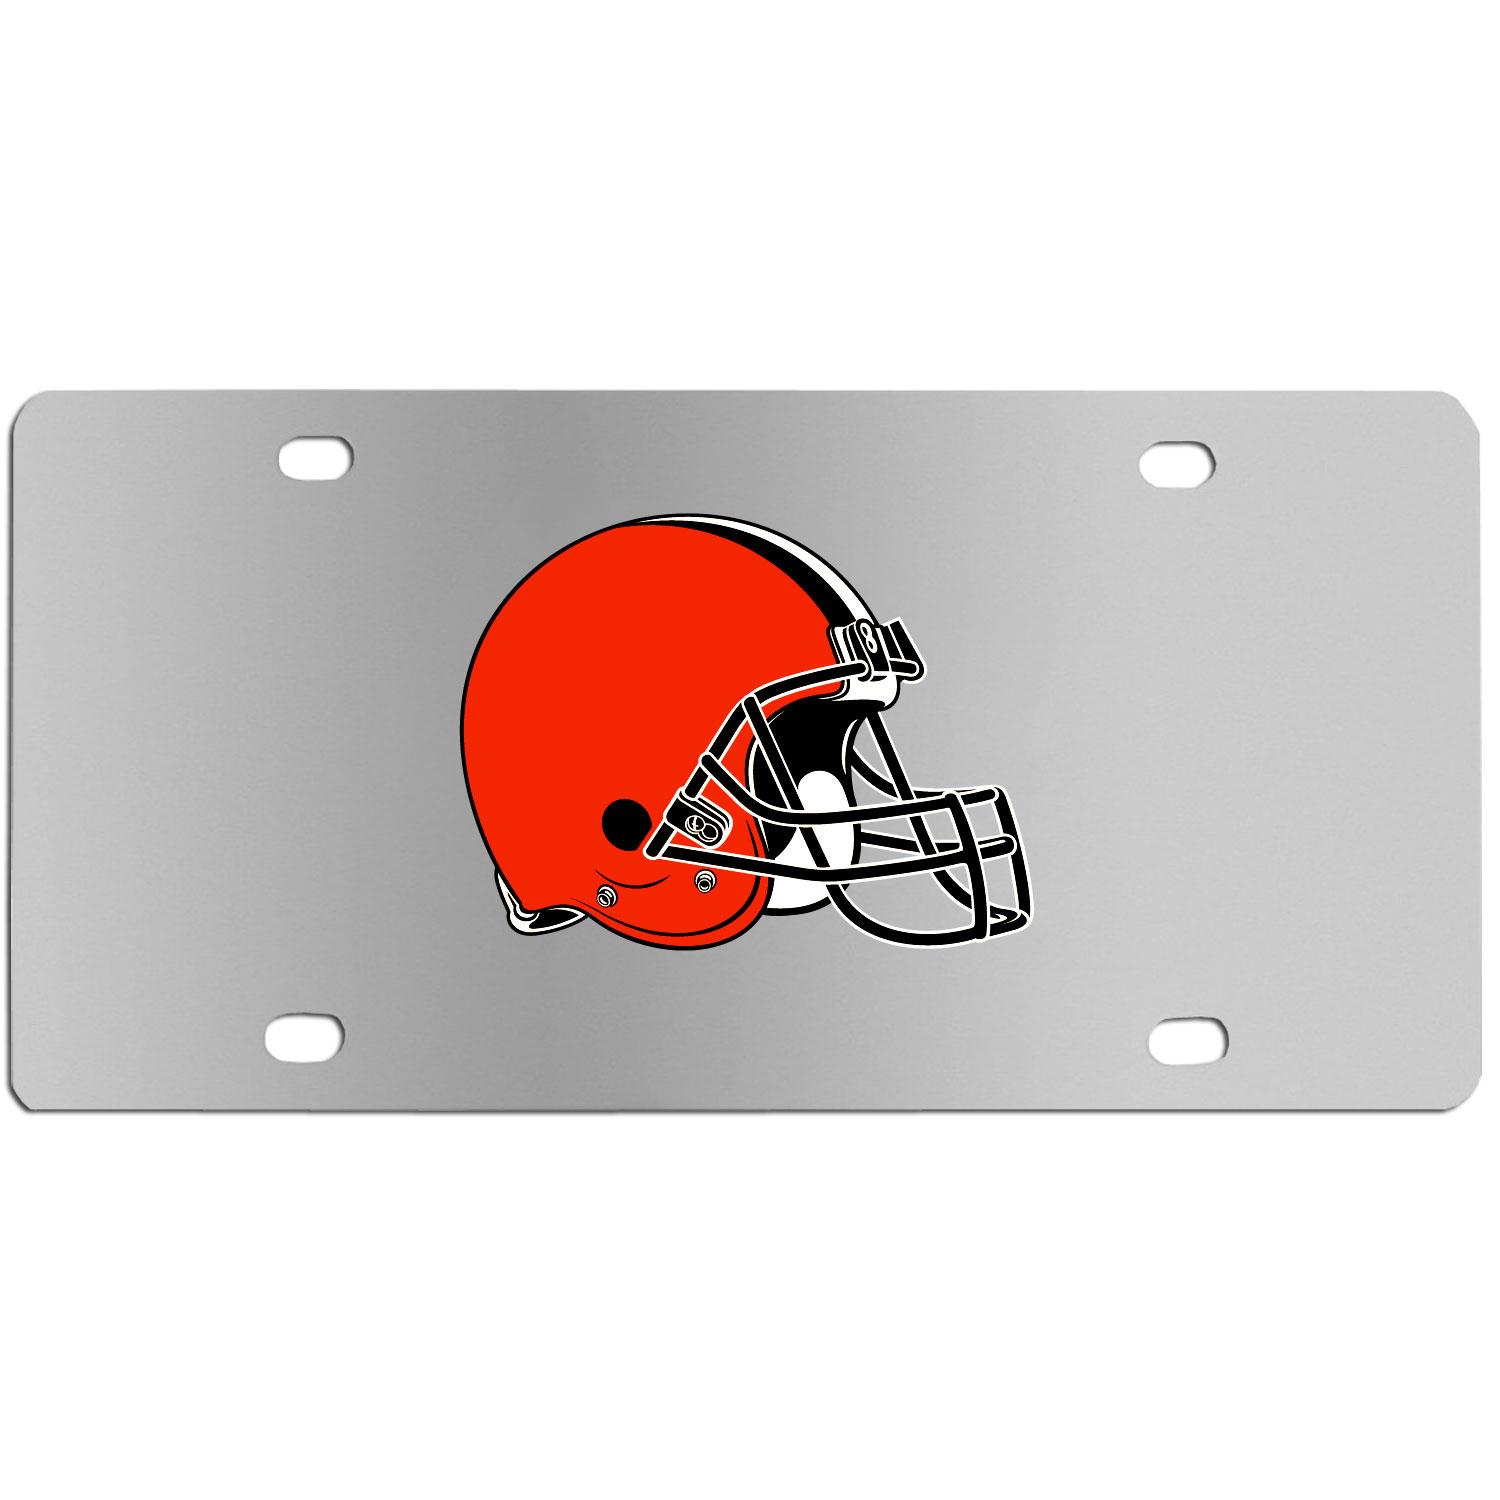 Cleveland Browns Steel License Plate Wall Plaque - This high-quality stainless steel license plate features a detailed team logo on a the polished surface. The attractive plate is perfect for wall mounting in your home or office to become the perfect die-hard Cleveland Browns fan decor.